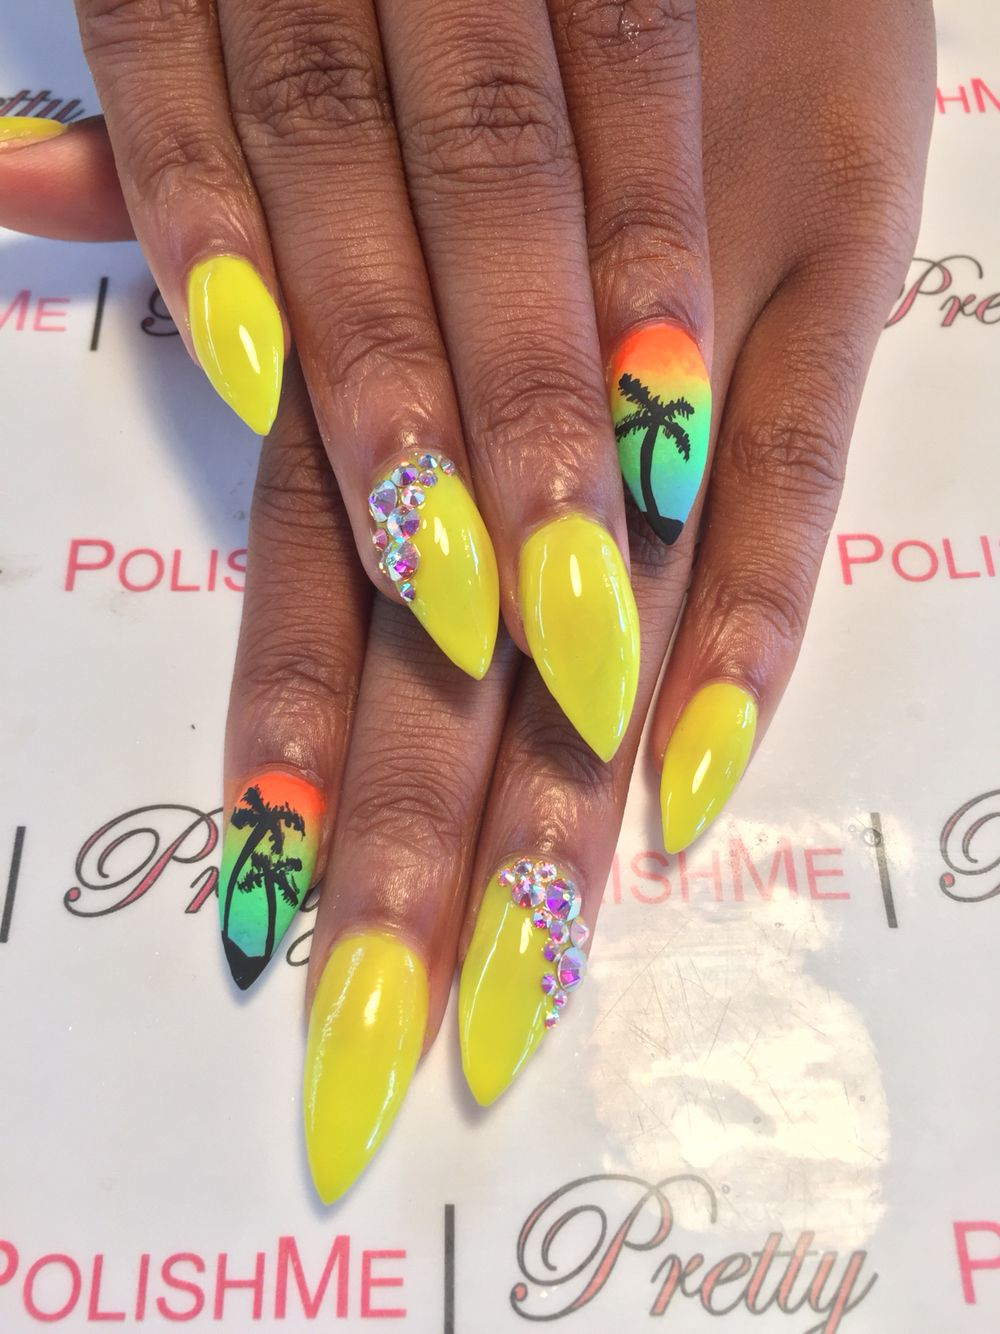 Stiletto Nails With Nail Art Colorful Nails Summernails Palm Trees Bright Colors Nails By